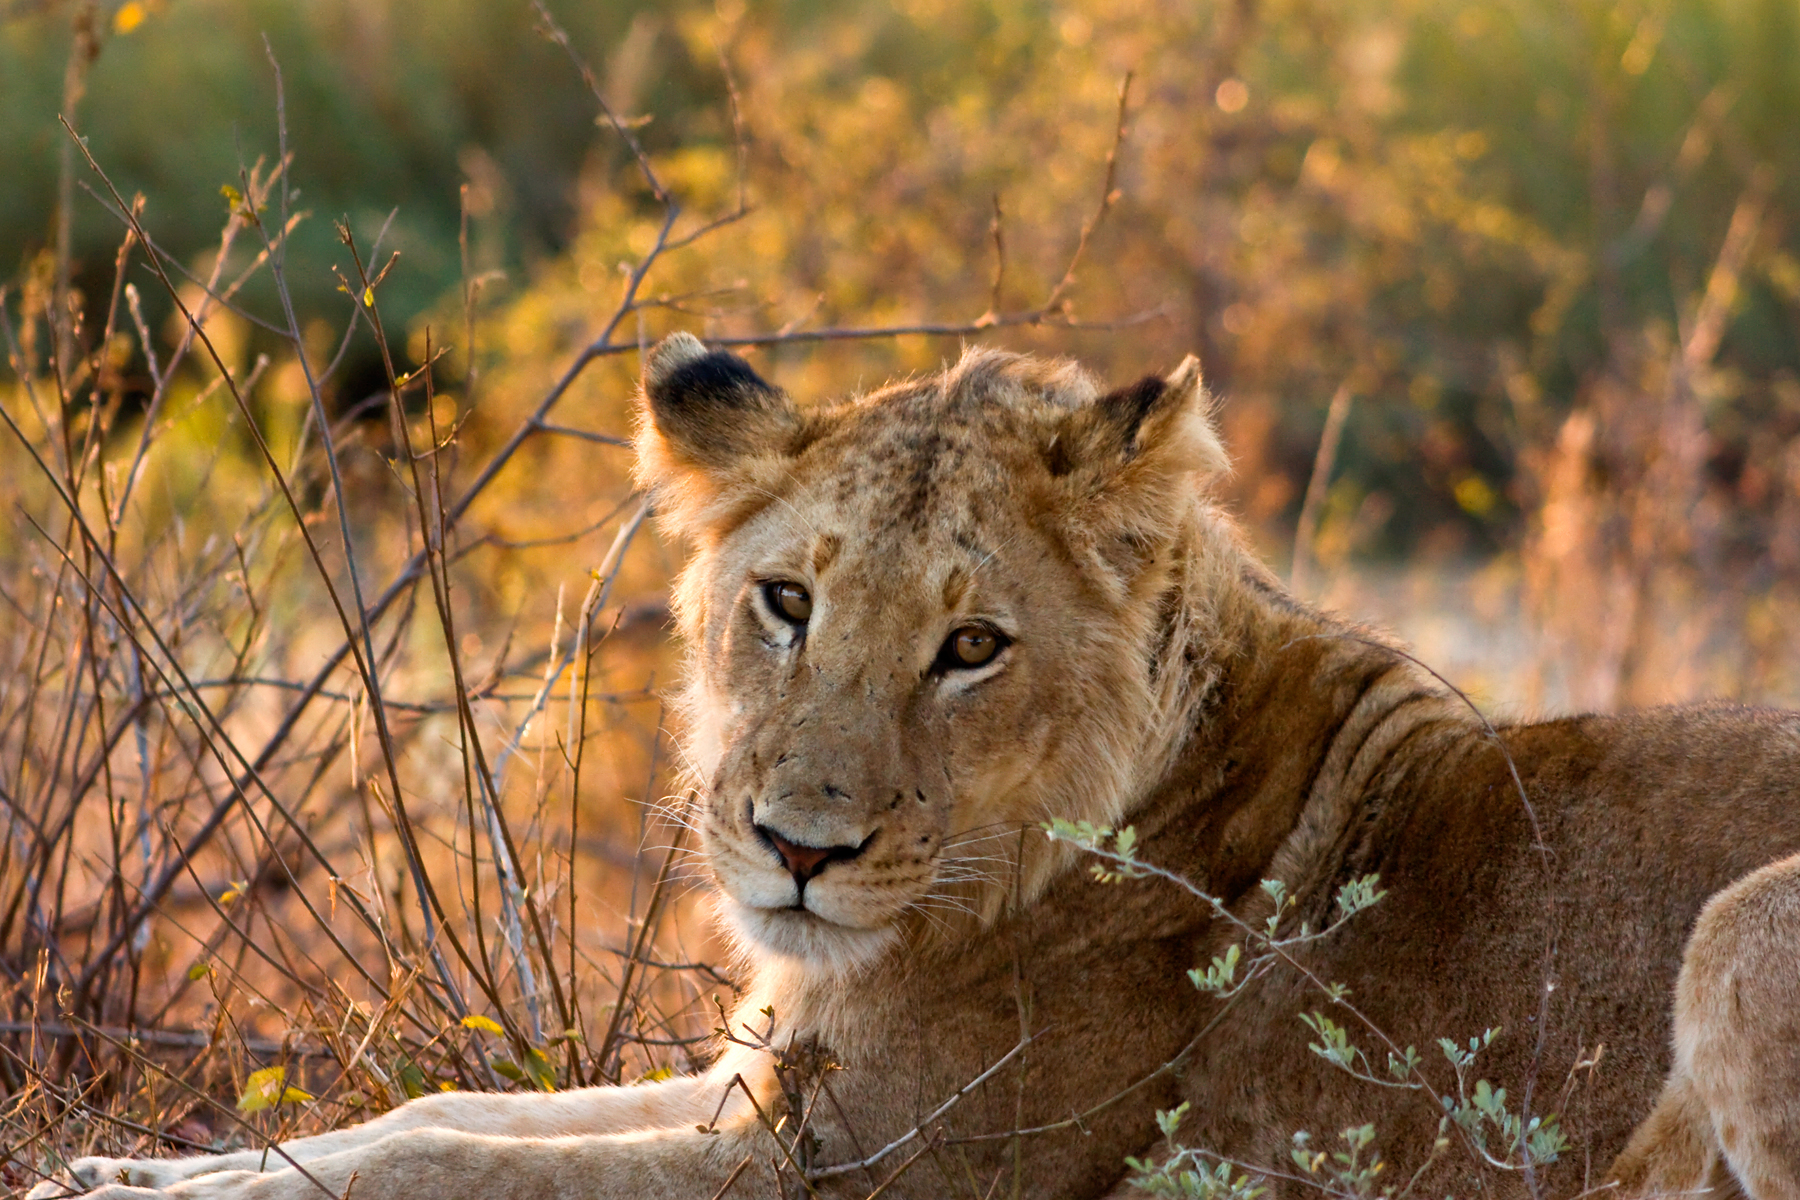 Lion_Female_Kruger_National_Park.jpg